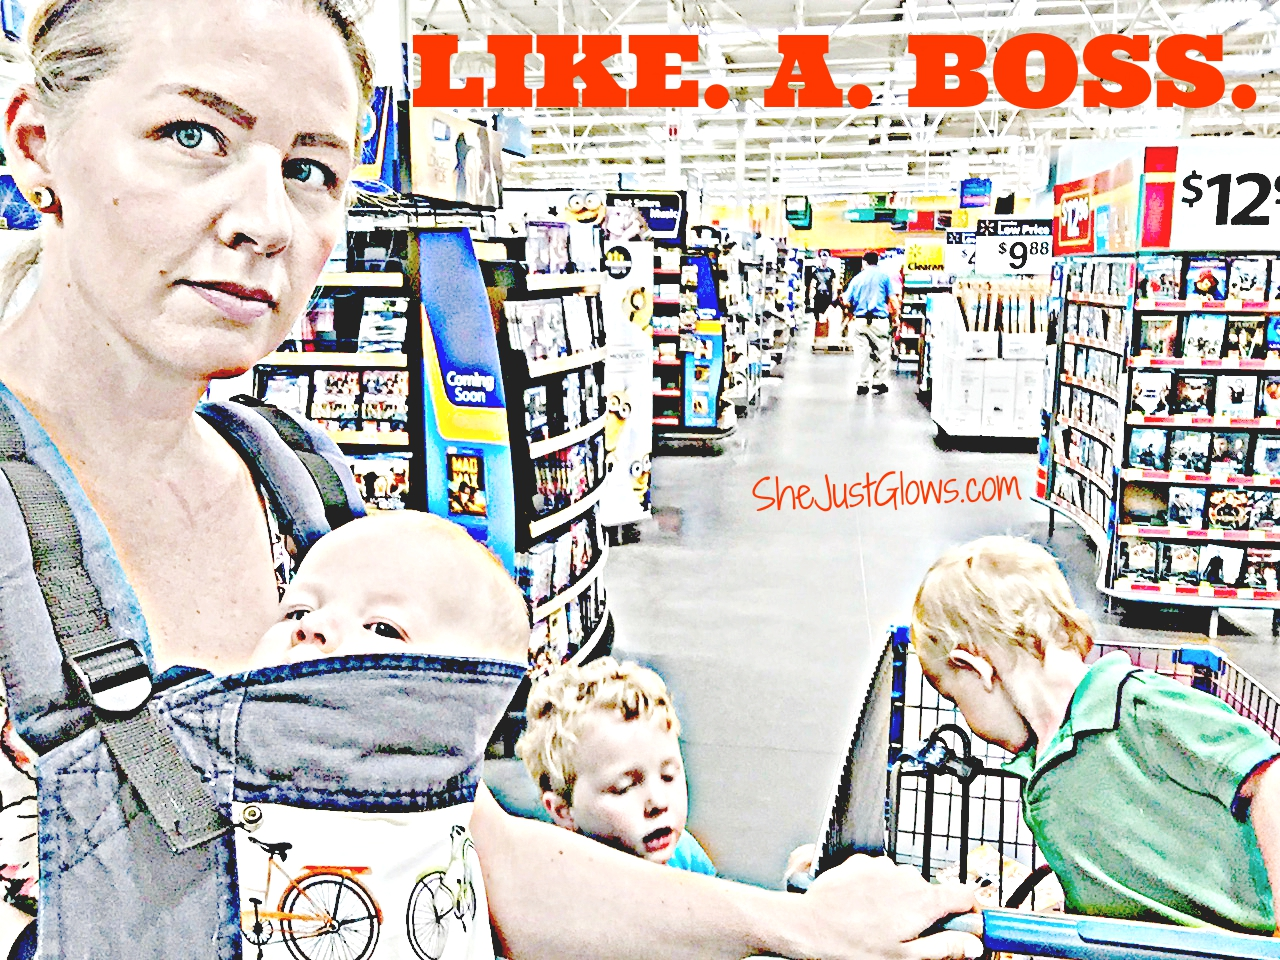 How to Survive a Grocery Trip With Kids in 39 Easy Steps SheJustGlows.com